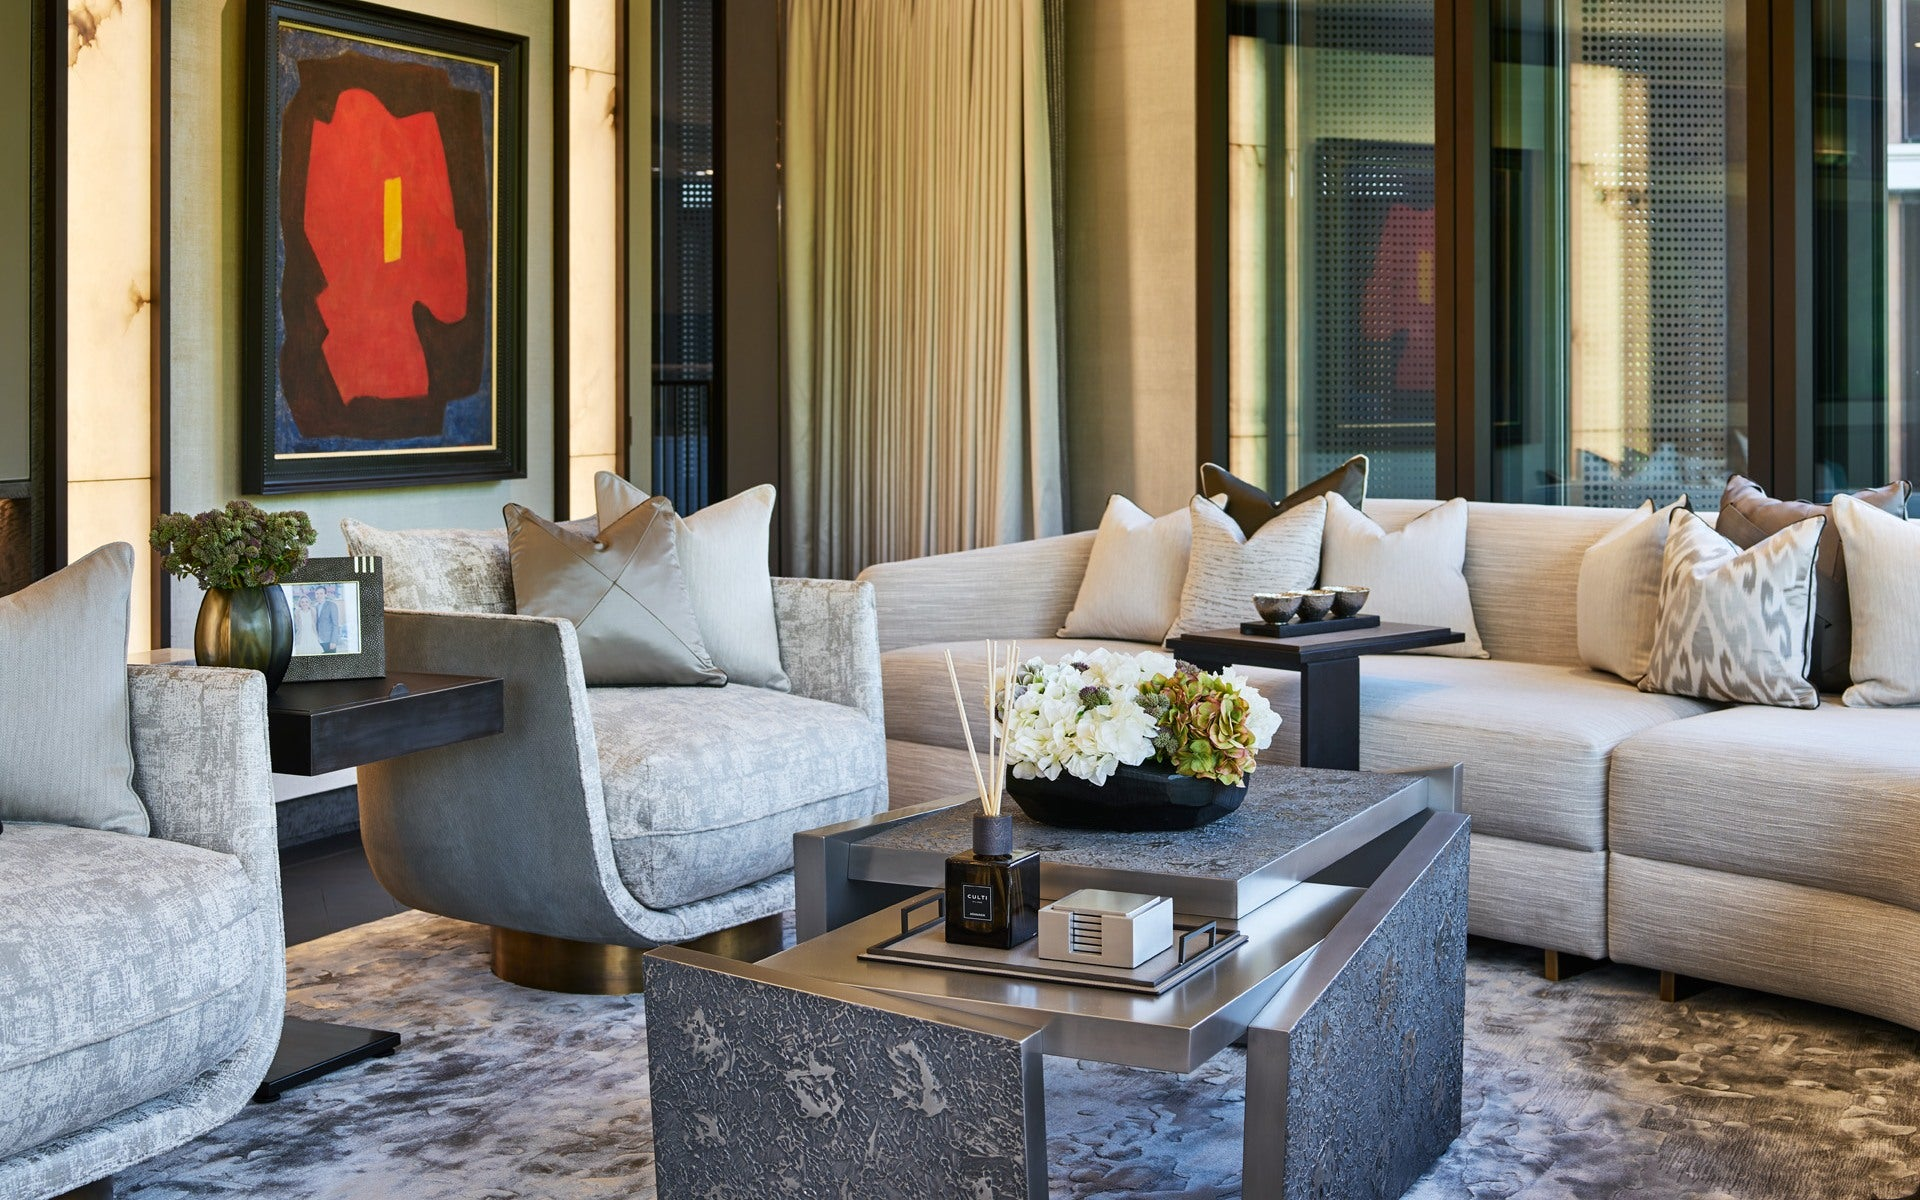 Statement Furniture - 7 Ways To Make a Statement In Your Living Room - LuxDeco.com